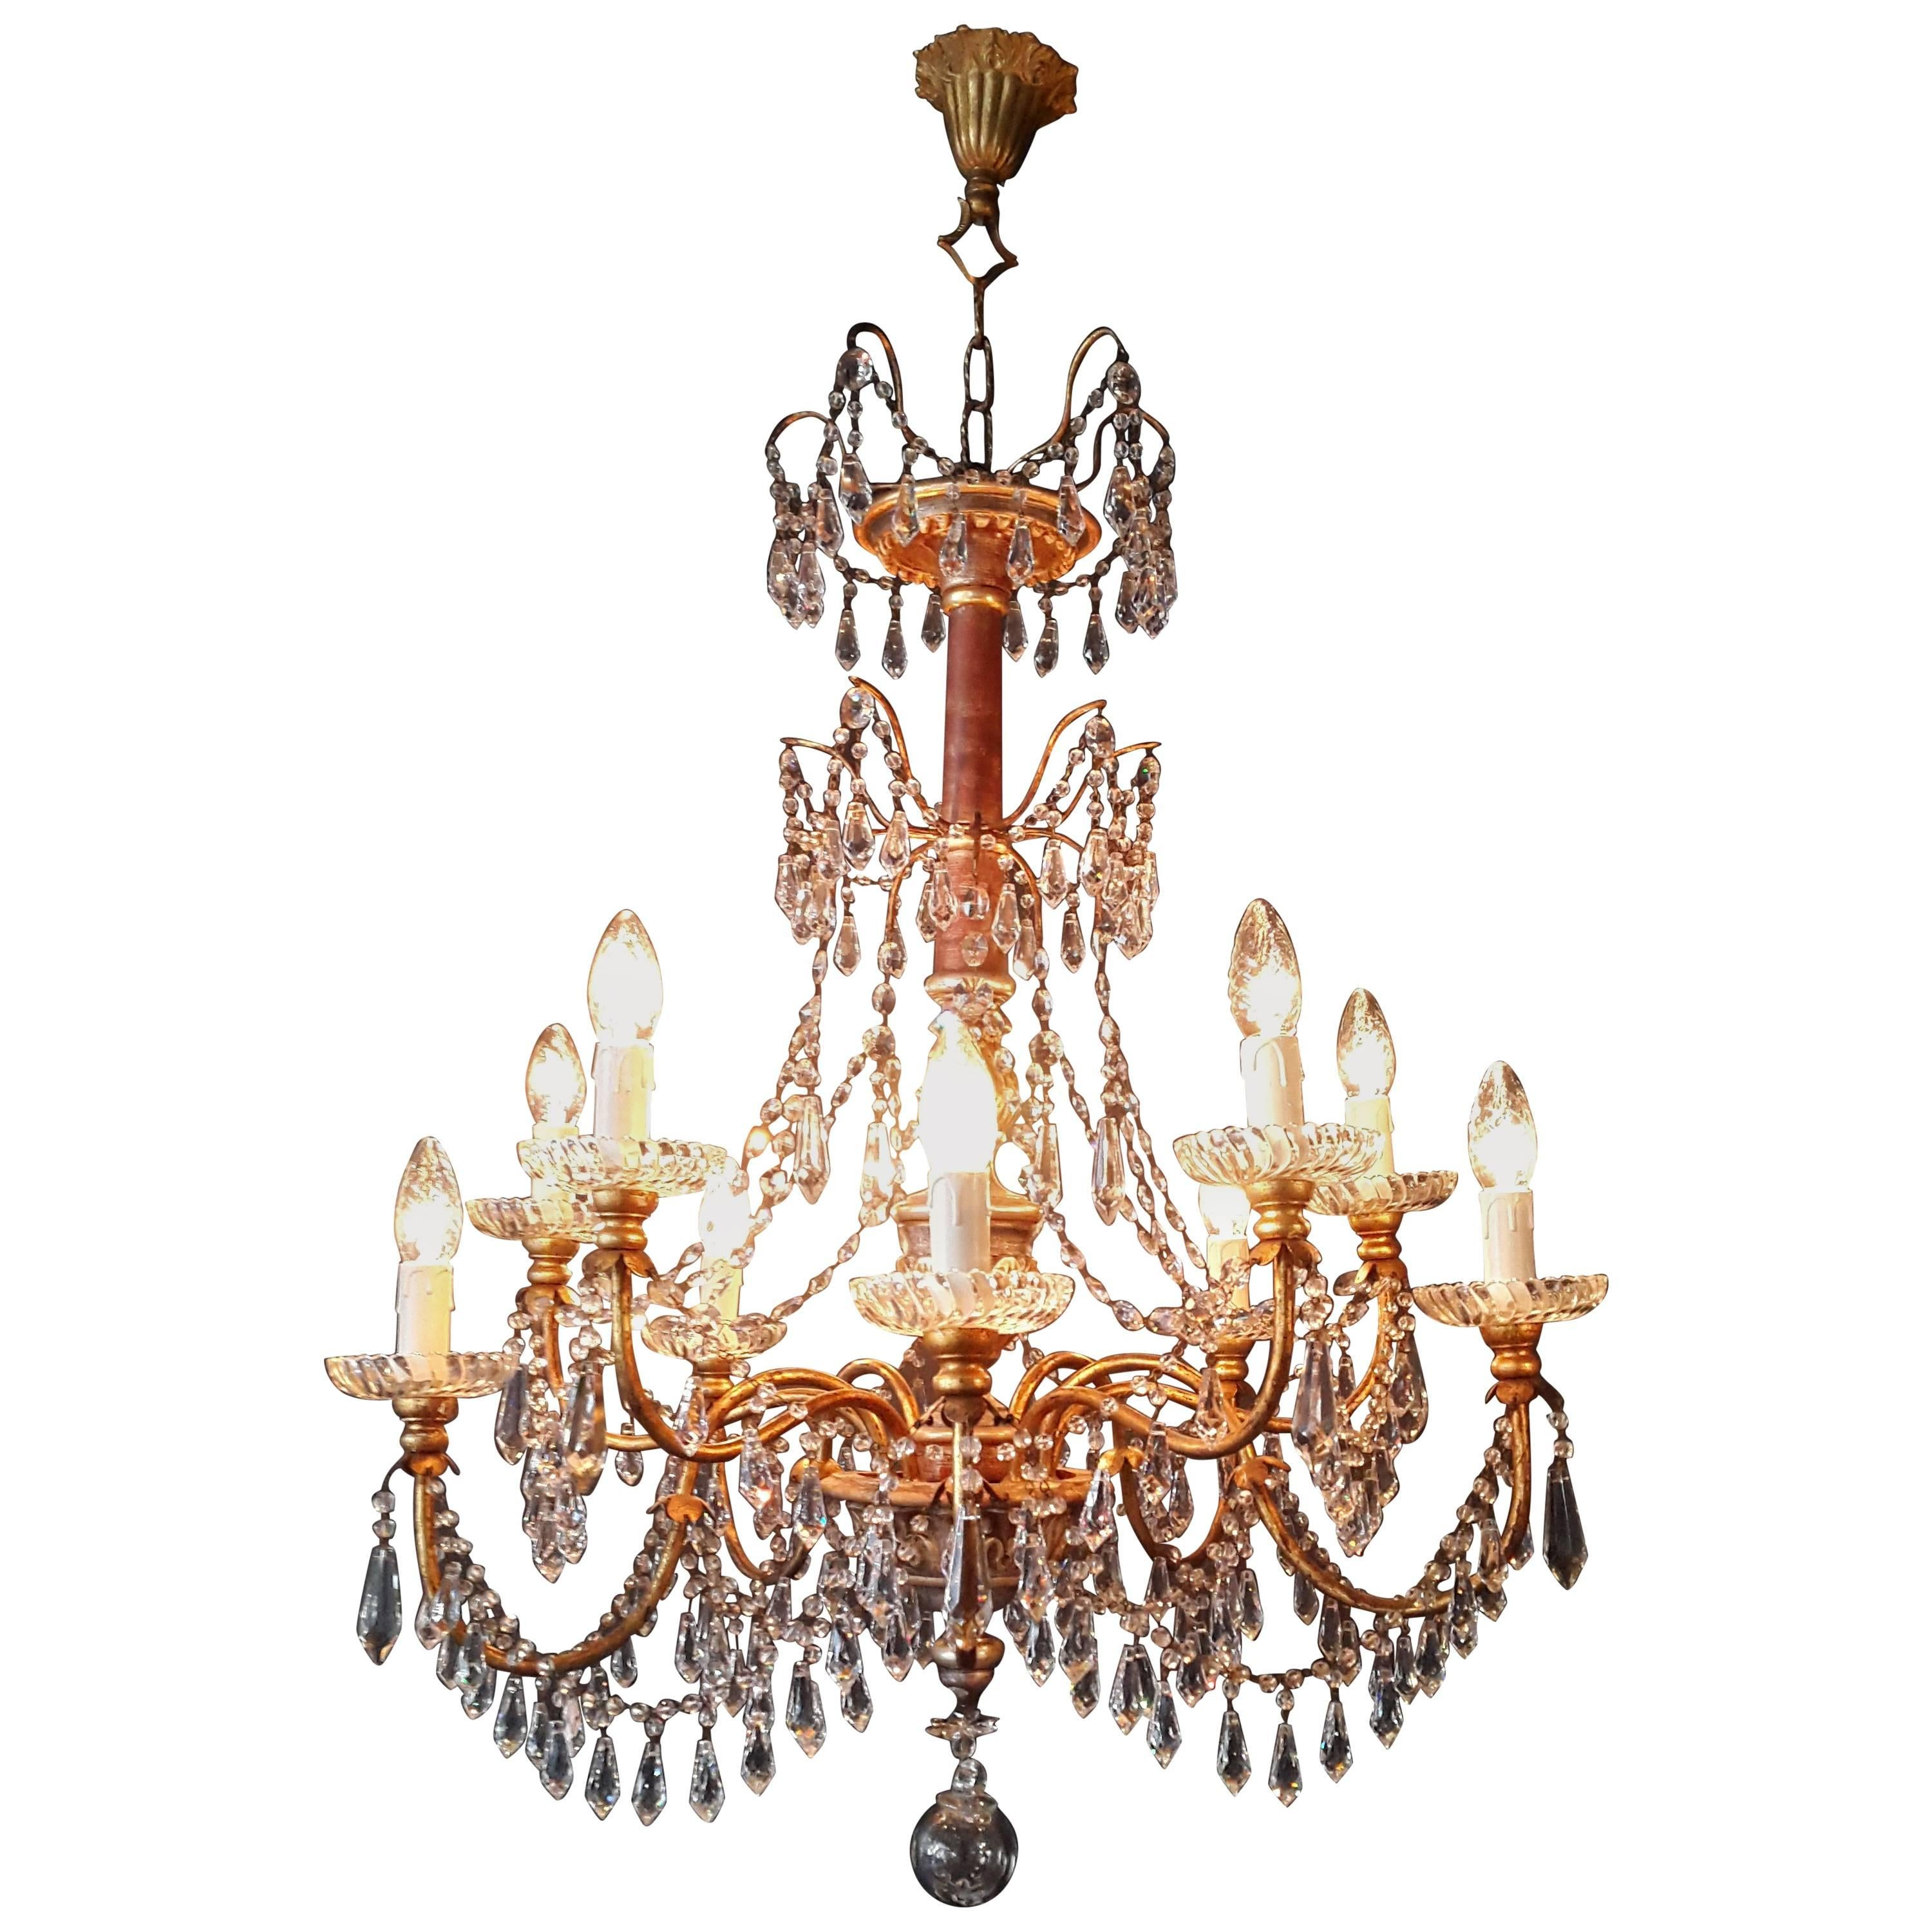 Antique Crystal Chandelier Lustre, 19th Century Wood For Sale